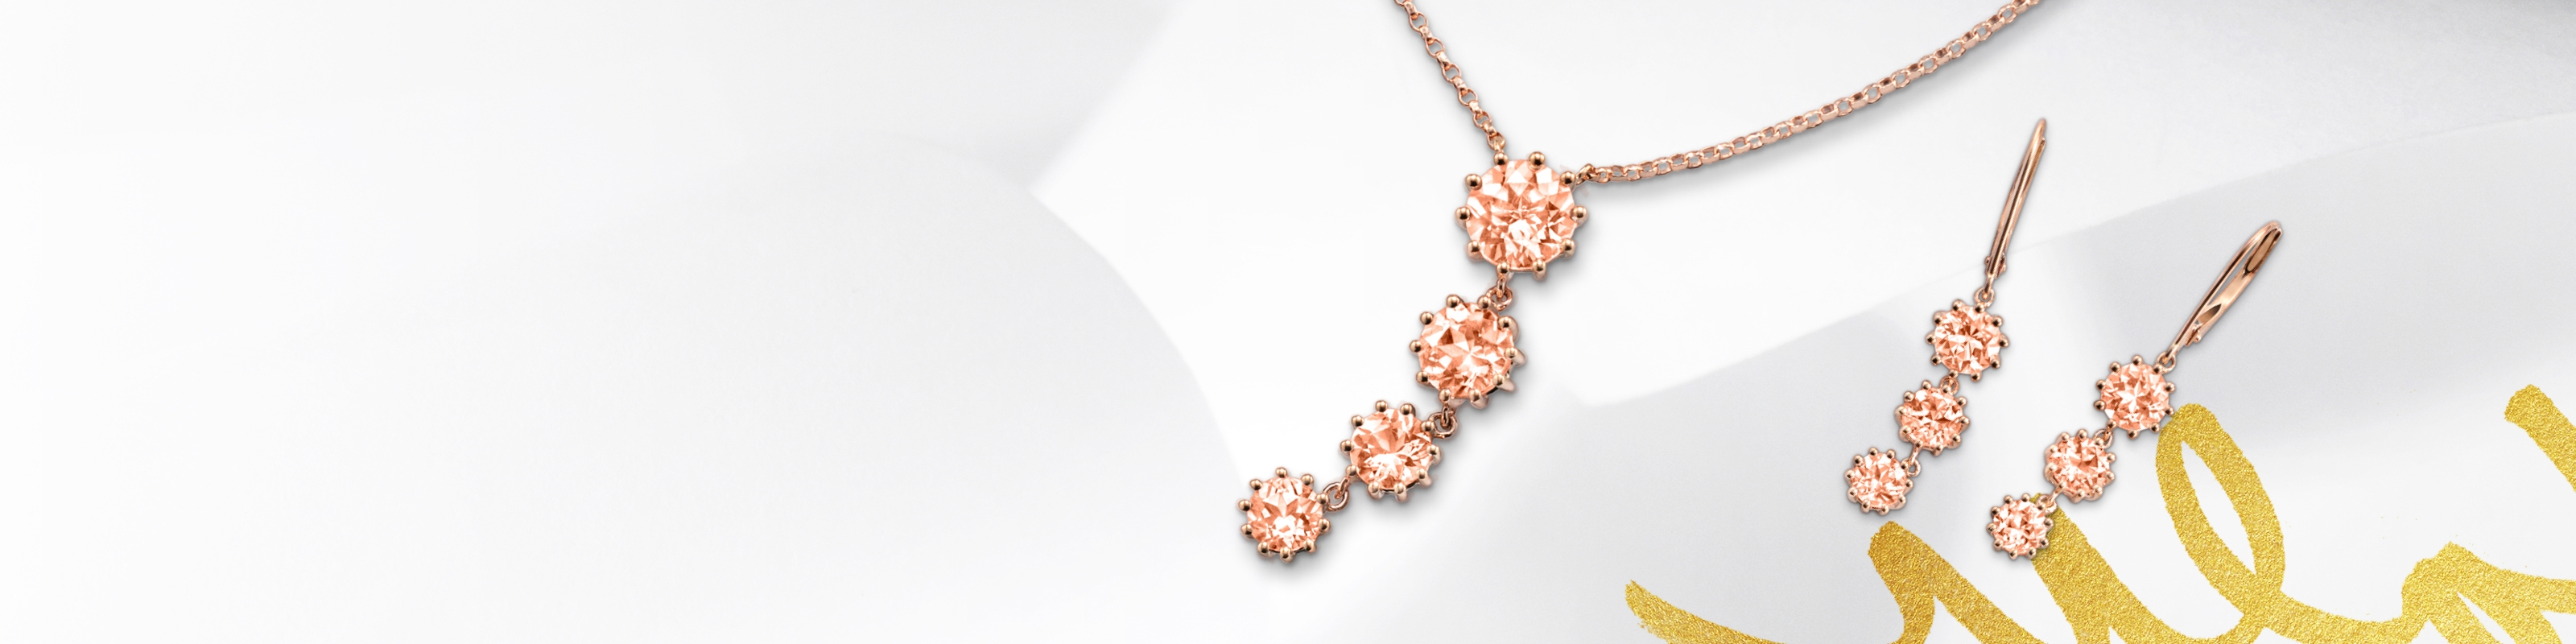 Morganite earrings and necklace set in rose gold. Shop all morganite jewelry at Jared.